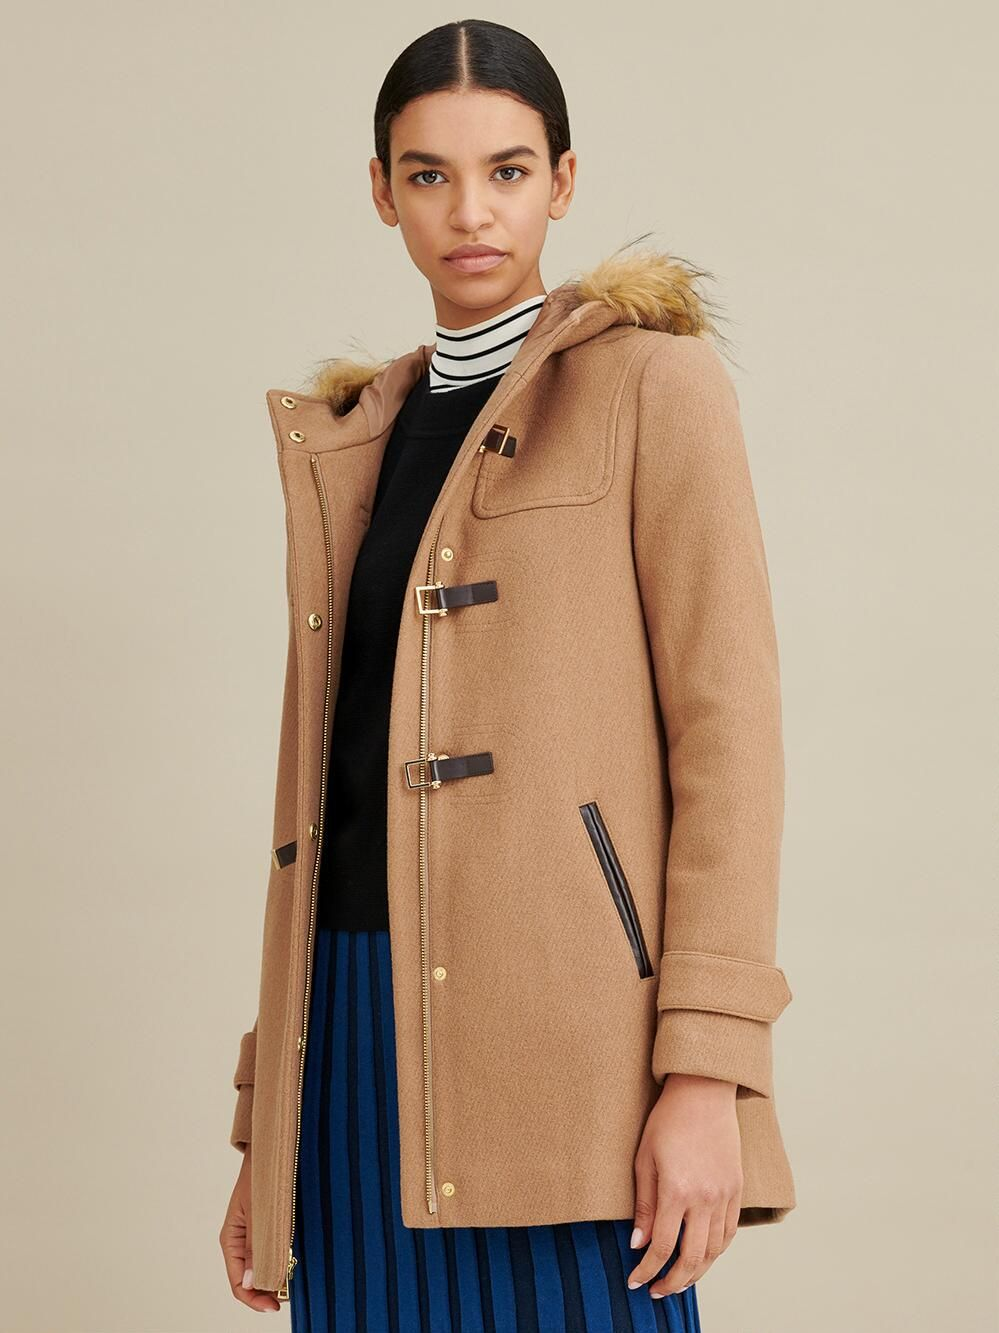 Wool Walker Coat with Toggles Hooded wool coat, Coat